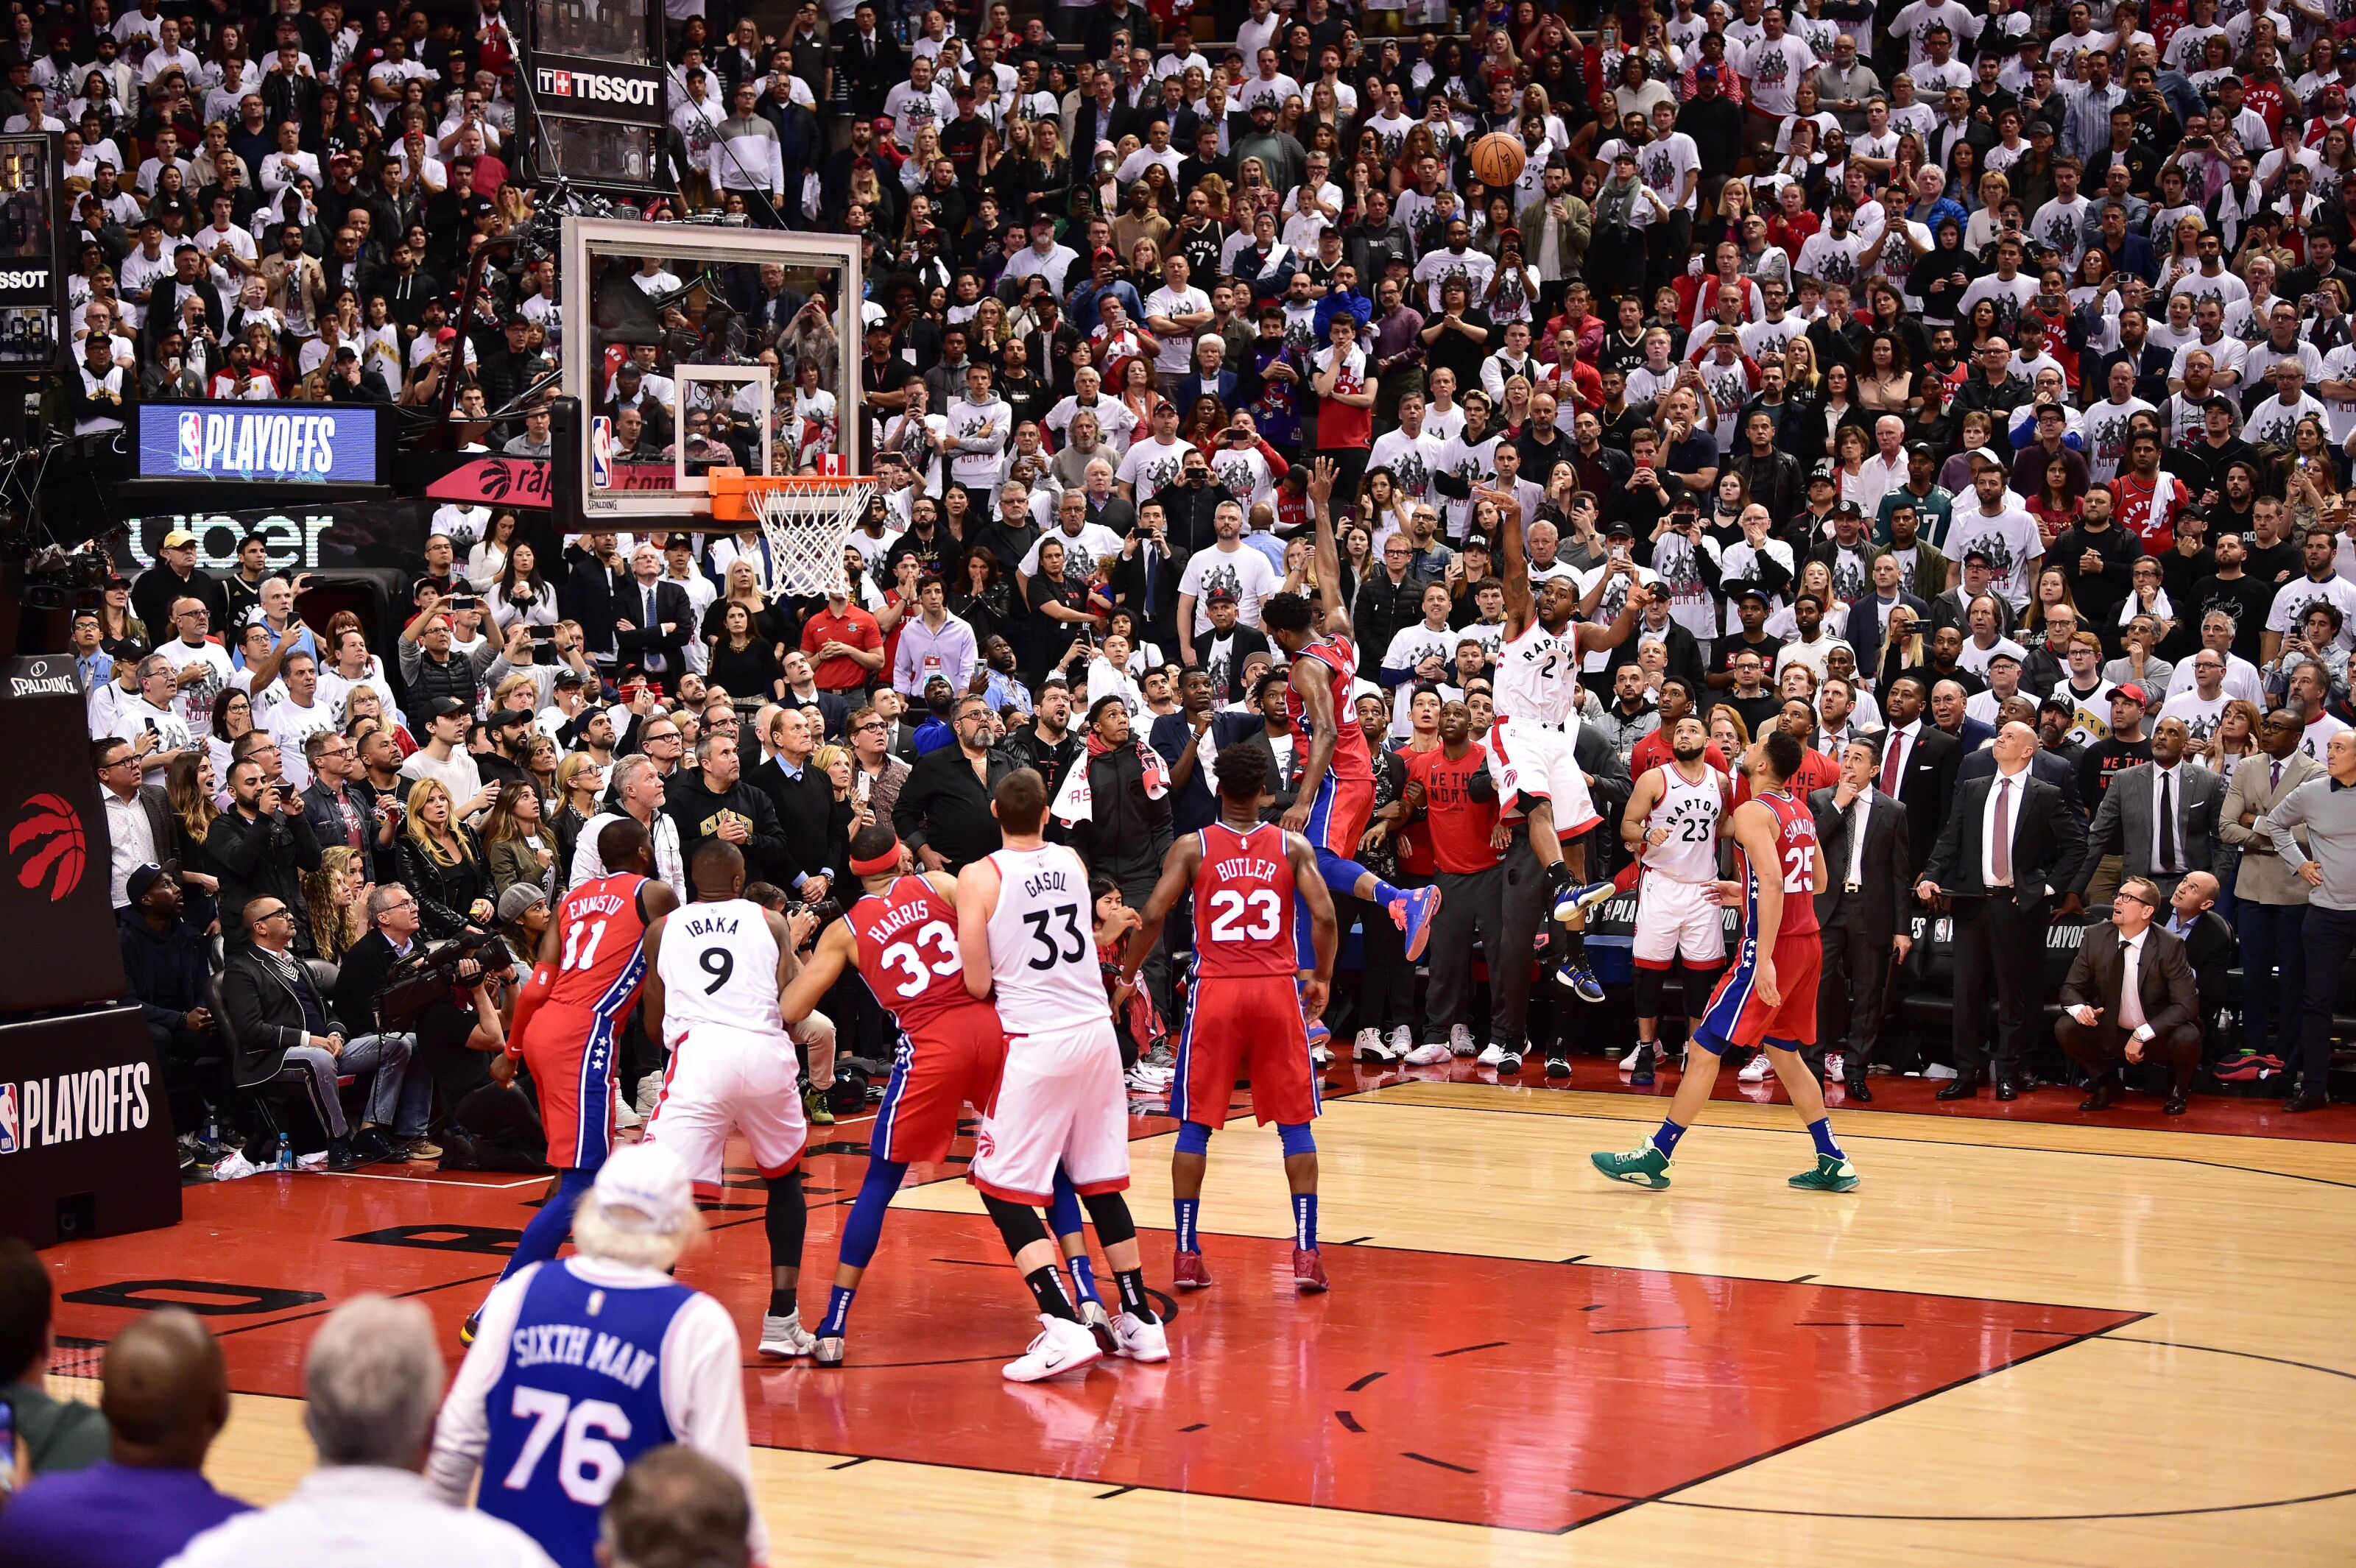 TORONTO, CANADA - MAY 12: Kawhi Leonard #2 of the Toronto Raptors shoots the game winning basket against the Philadelphia 76ers during Game Seven of the Eastern Conference Semi-Finals of the 2019 NBA Playoffs on May 12, 2019 at the Scotiabank Arena in Toronto, Ontario, Canada. NOTE TO USER: User expressly acknowledges and agrees that, by downloading and or using this Photograph, user is consenting to the terms and conditions of the Getty Images License Agreement. Mandatory Copyright Notice: Copyright 2019 NBAE (Photo by David Dow/NBAE via Getty Images)